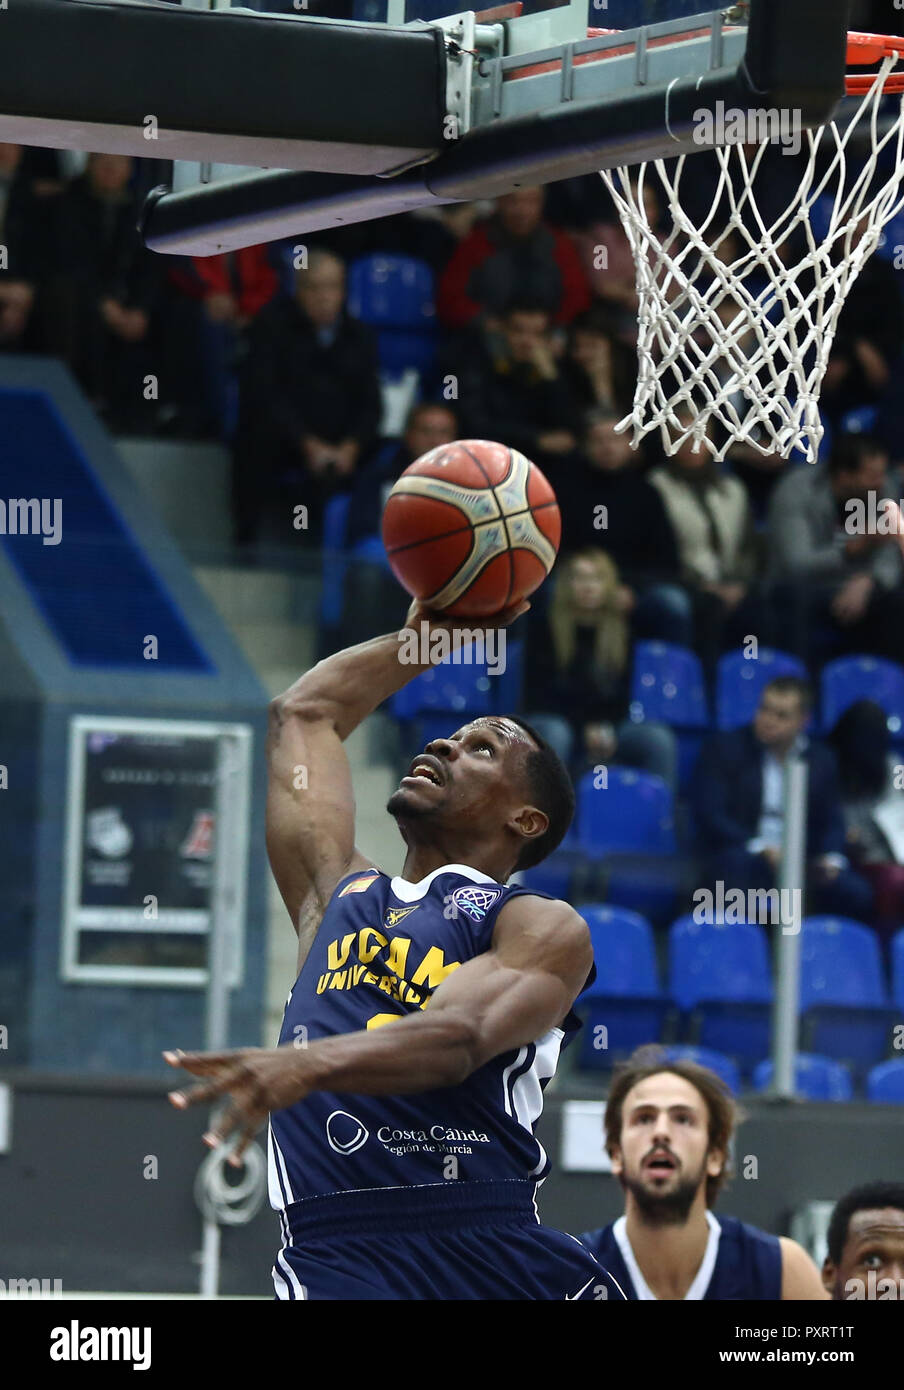 Charlon Kloof (UCAM) seen in action during the game. Basketball Champions League: BC Nizhny Novgorod (BCNN) from Russia vs Ucam Murcia Club Baloncesto (UCAM) from Spain. The game ended with the score 51: 72. Stock Photo